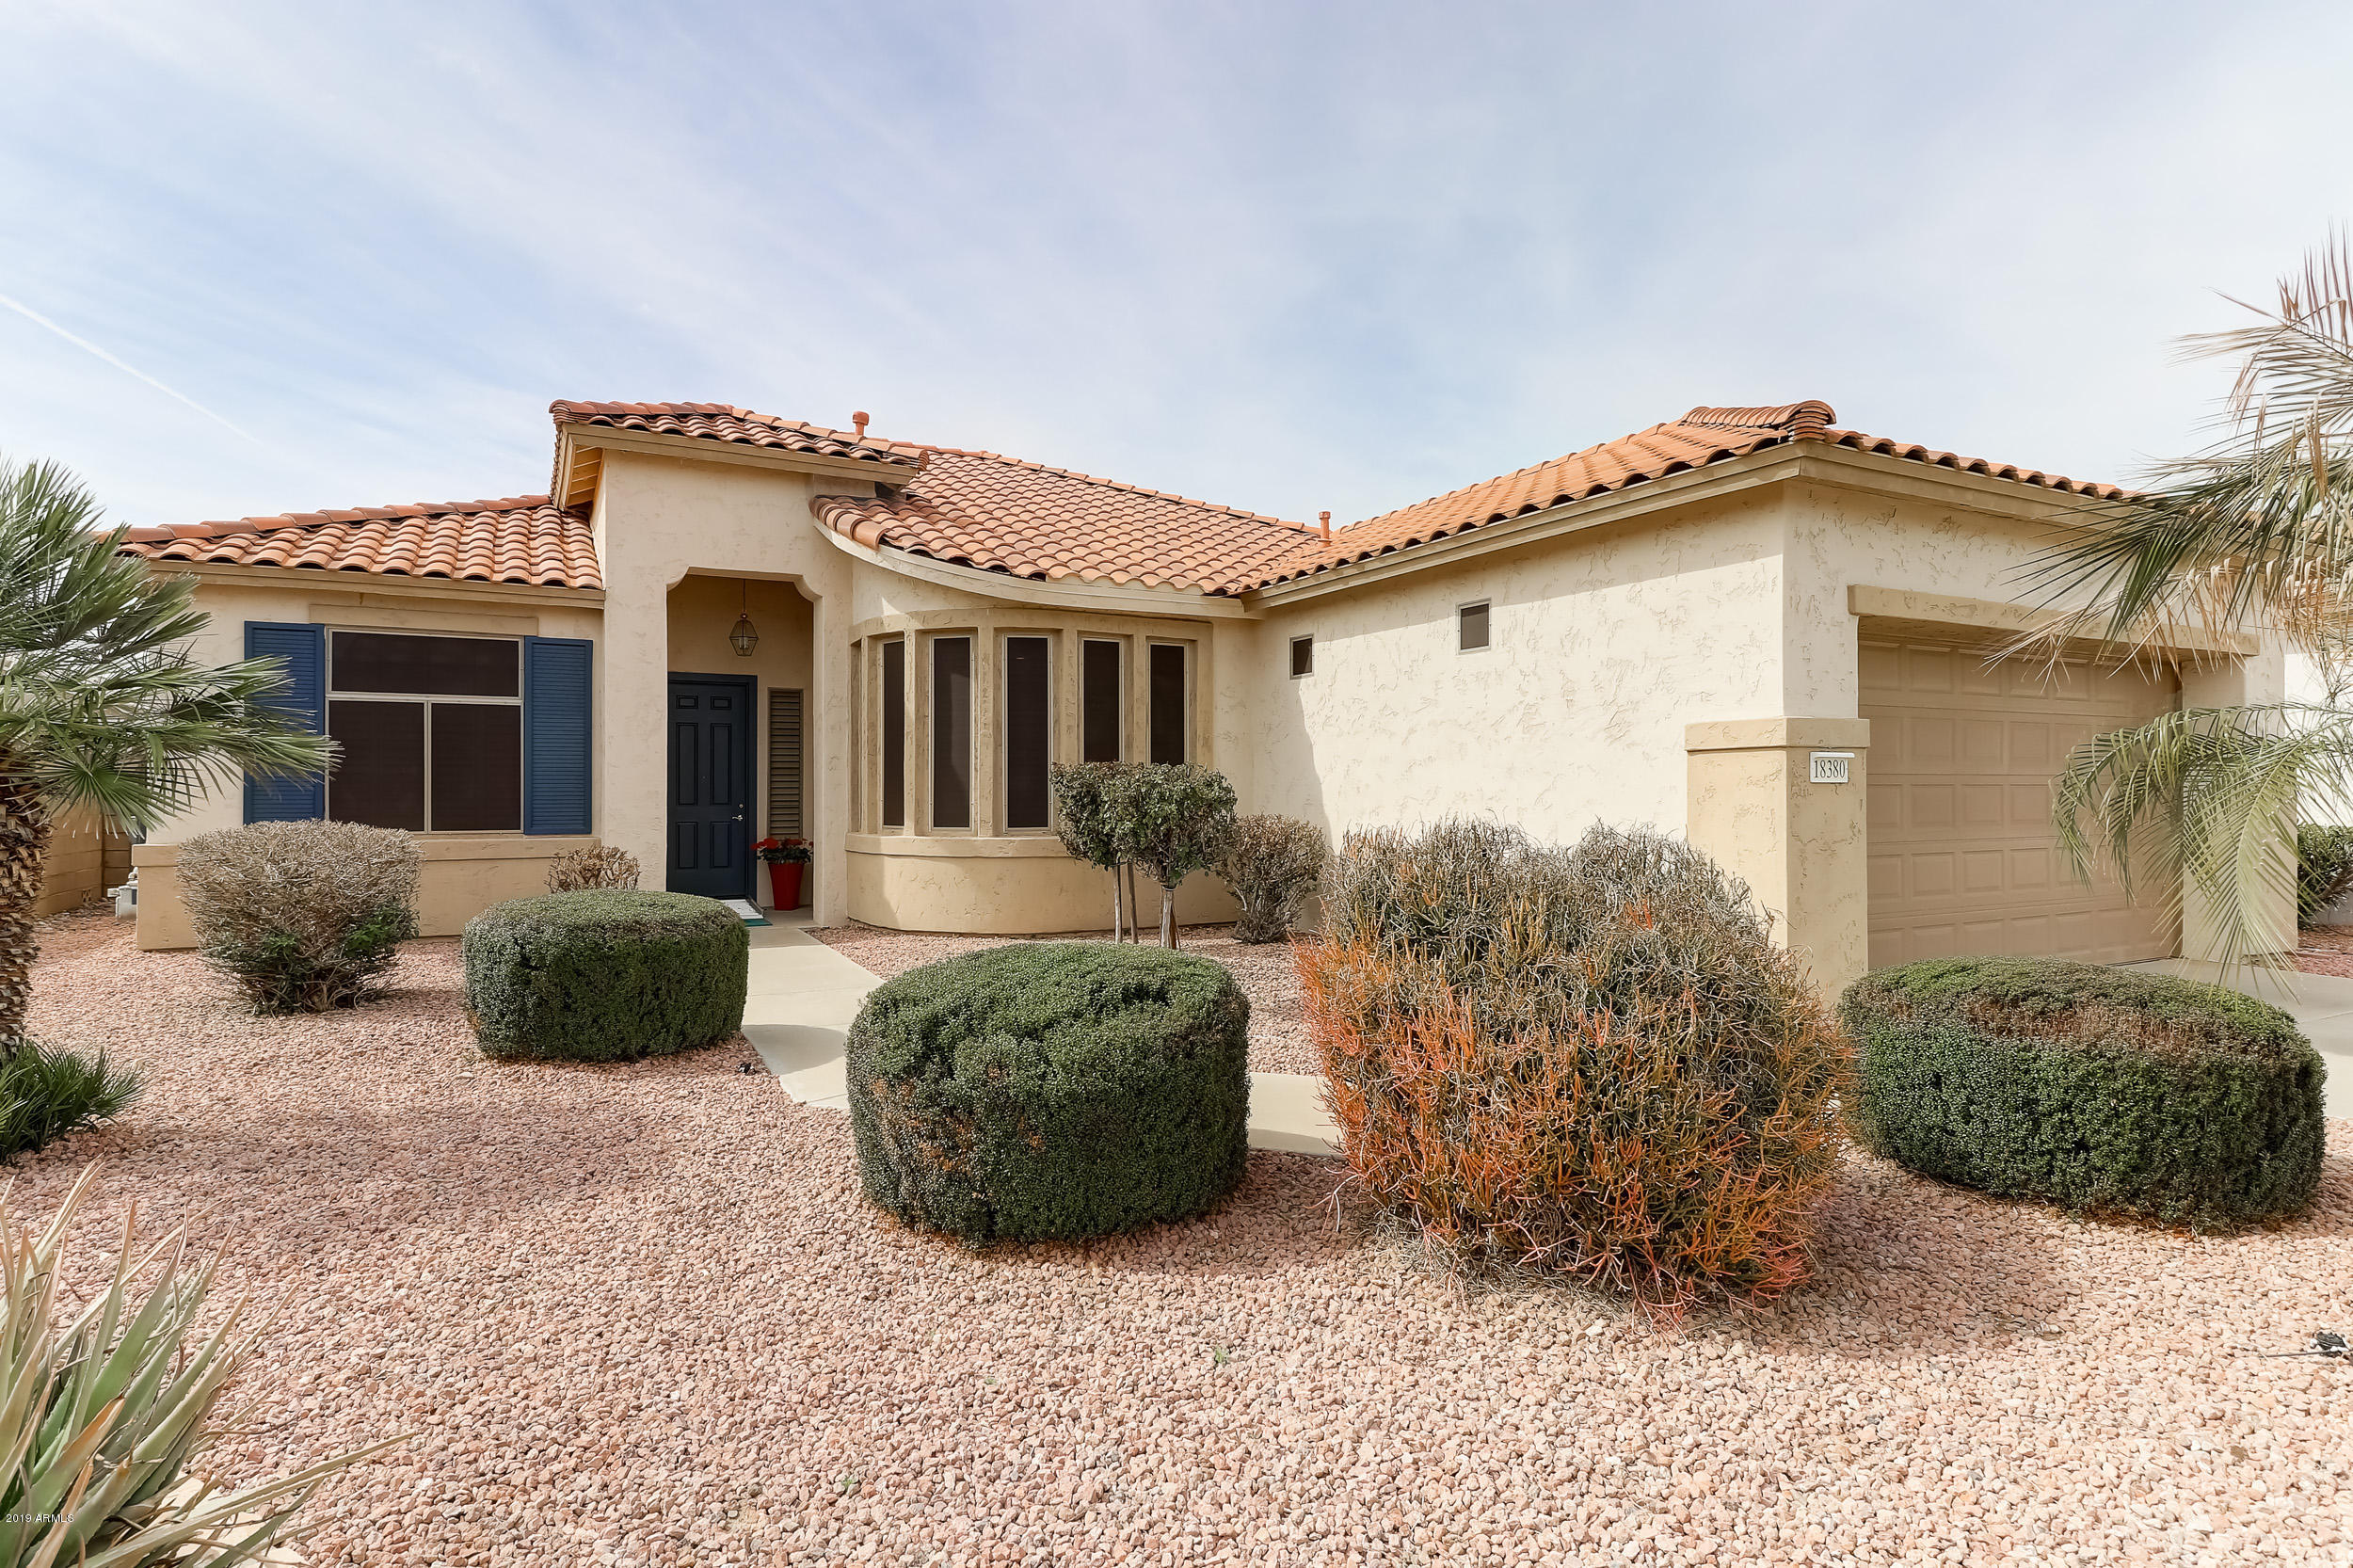 Photo of 18380 N ALAMO Drive, Surprise, AZ 85374